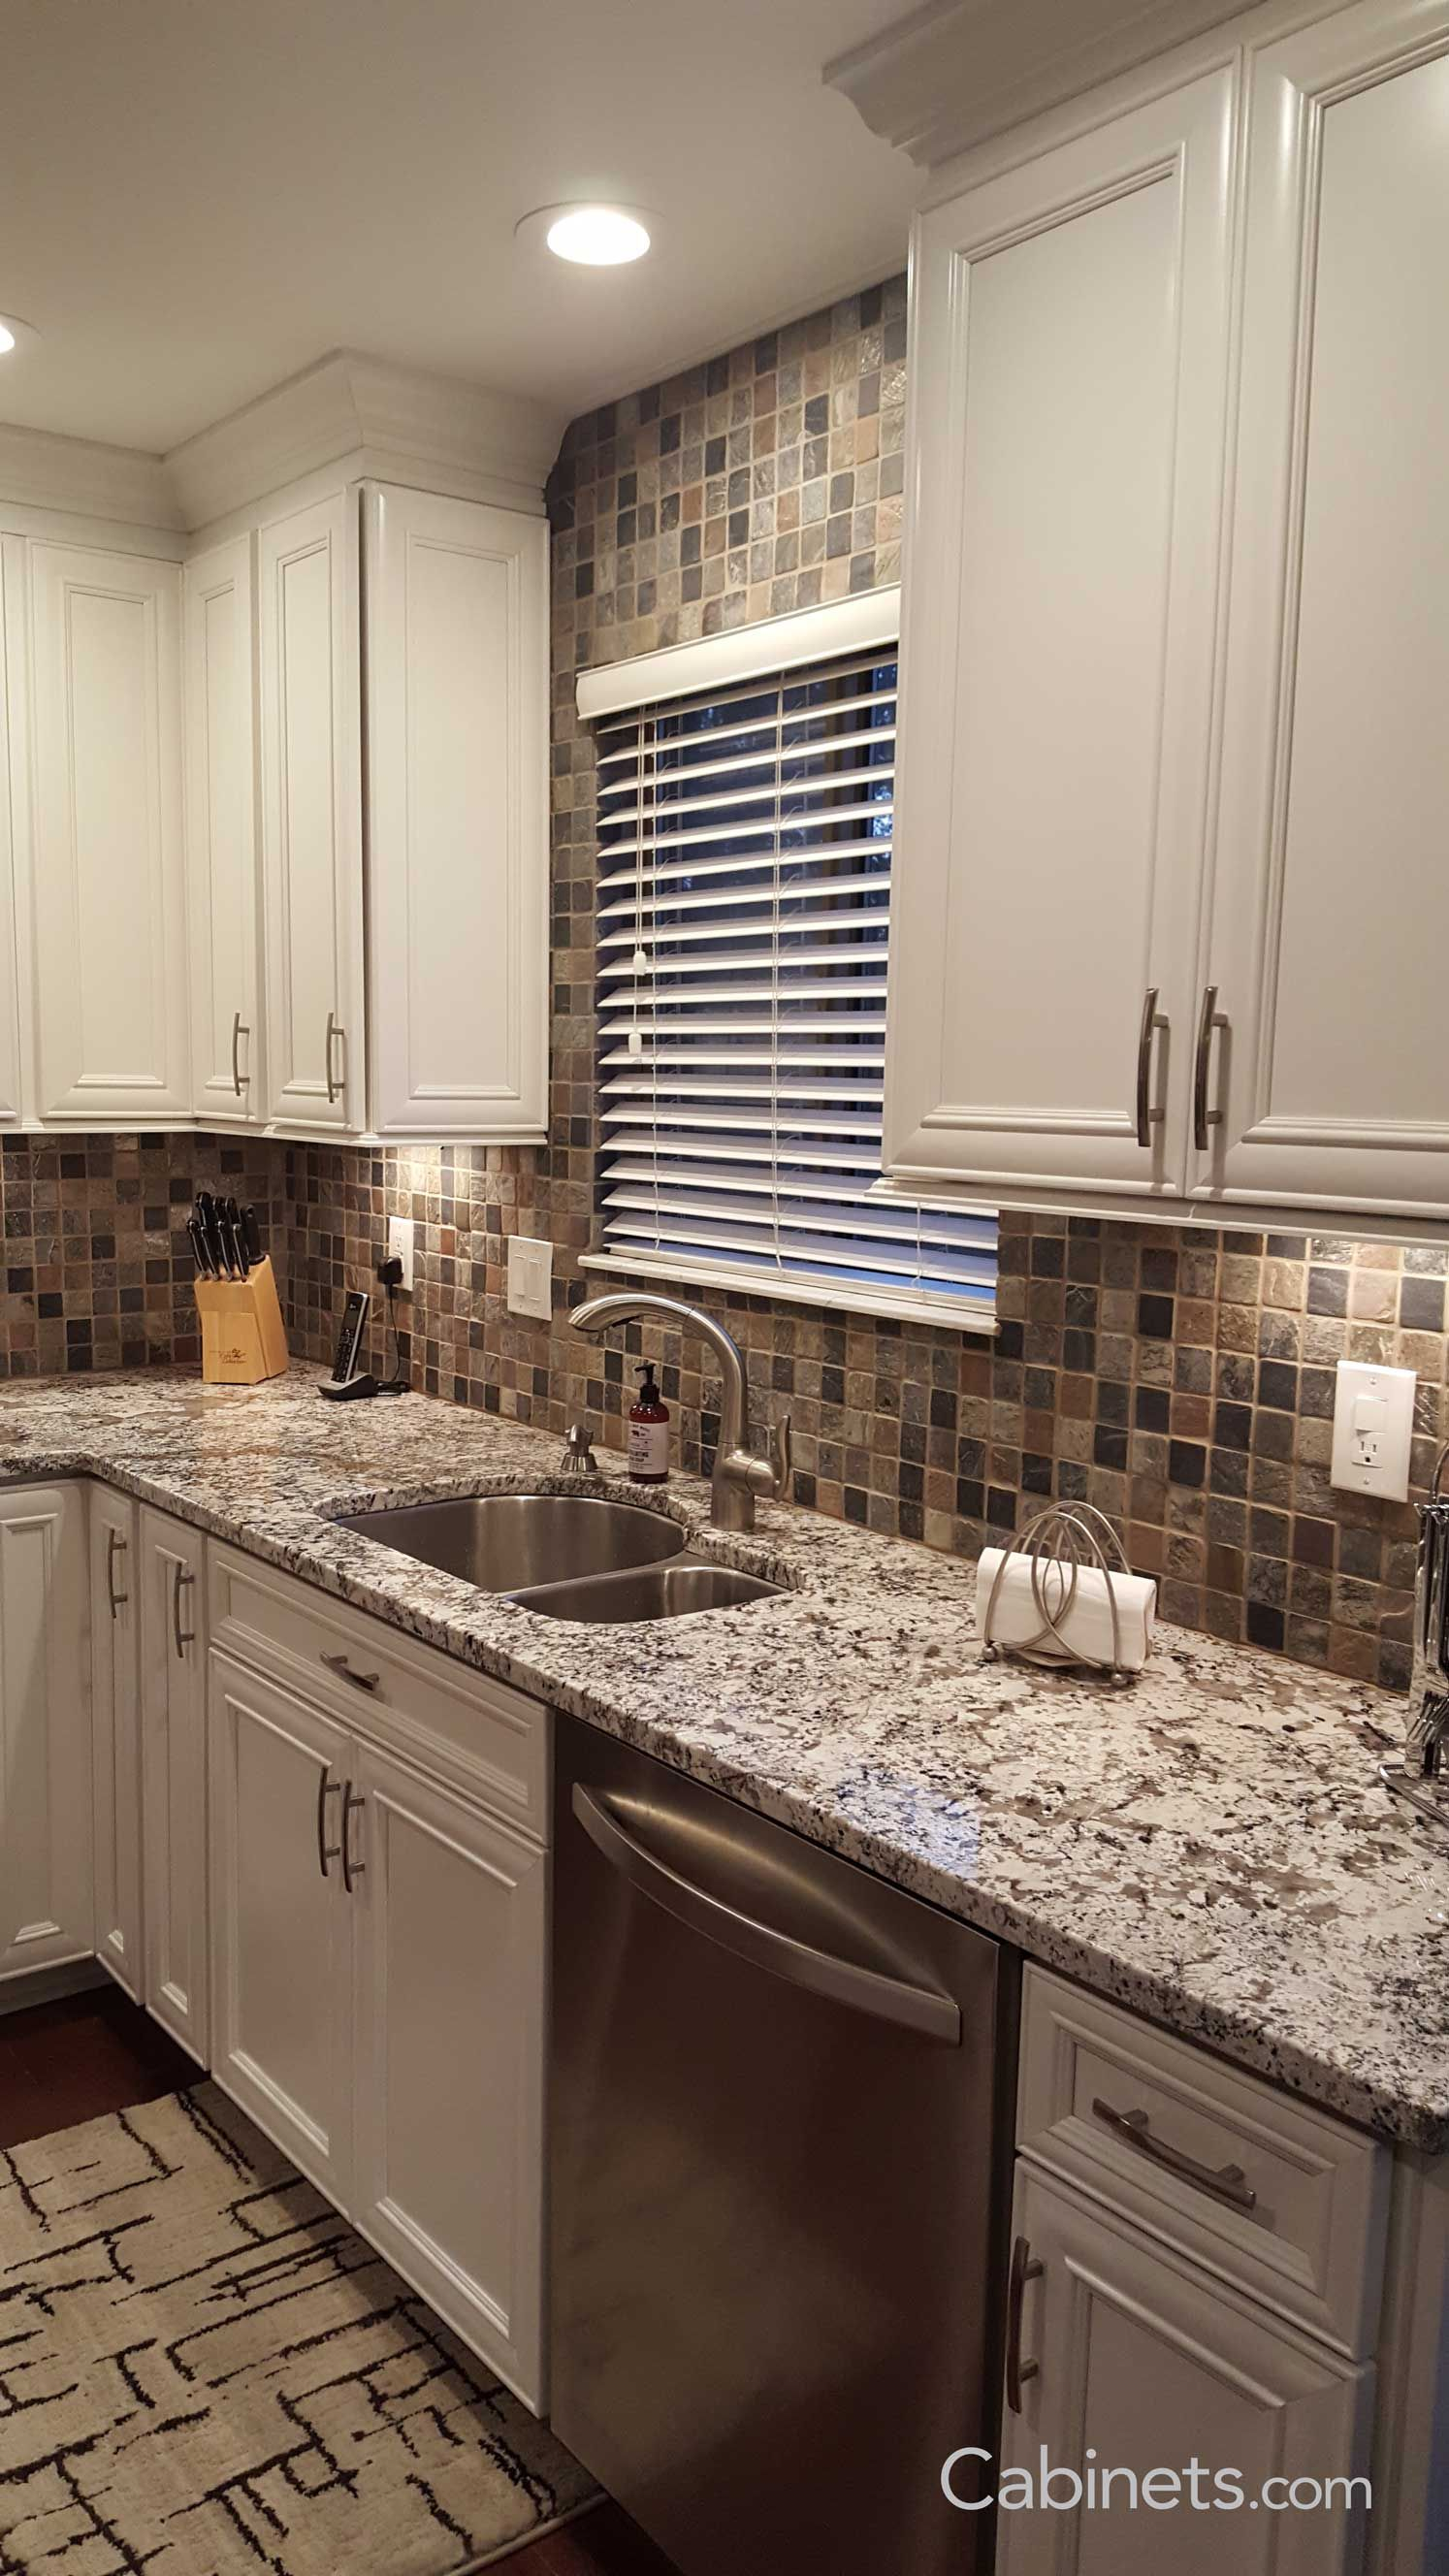 Backsplashes Backsplashideas Backsplash Kitchen White Cabinets